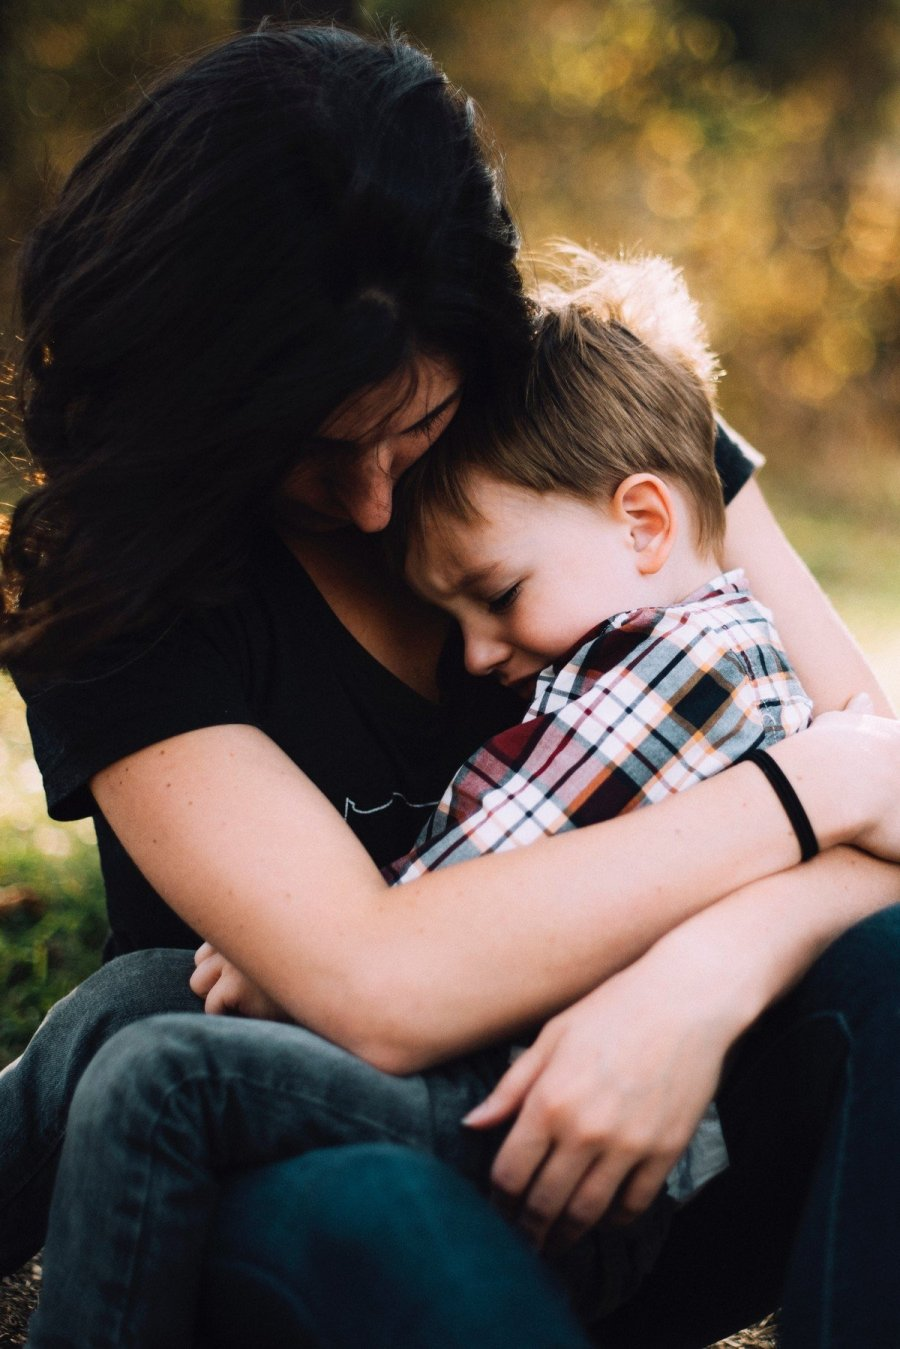 Children are not immune to depression. Just like for adults, treatment can be critical. Finding help for a depressed child may forestall years of anguish, and may even save that child's life.